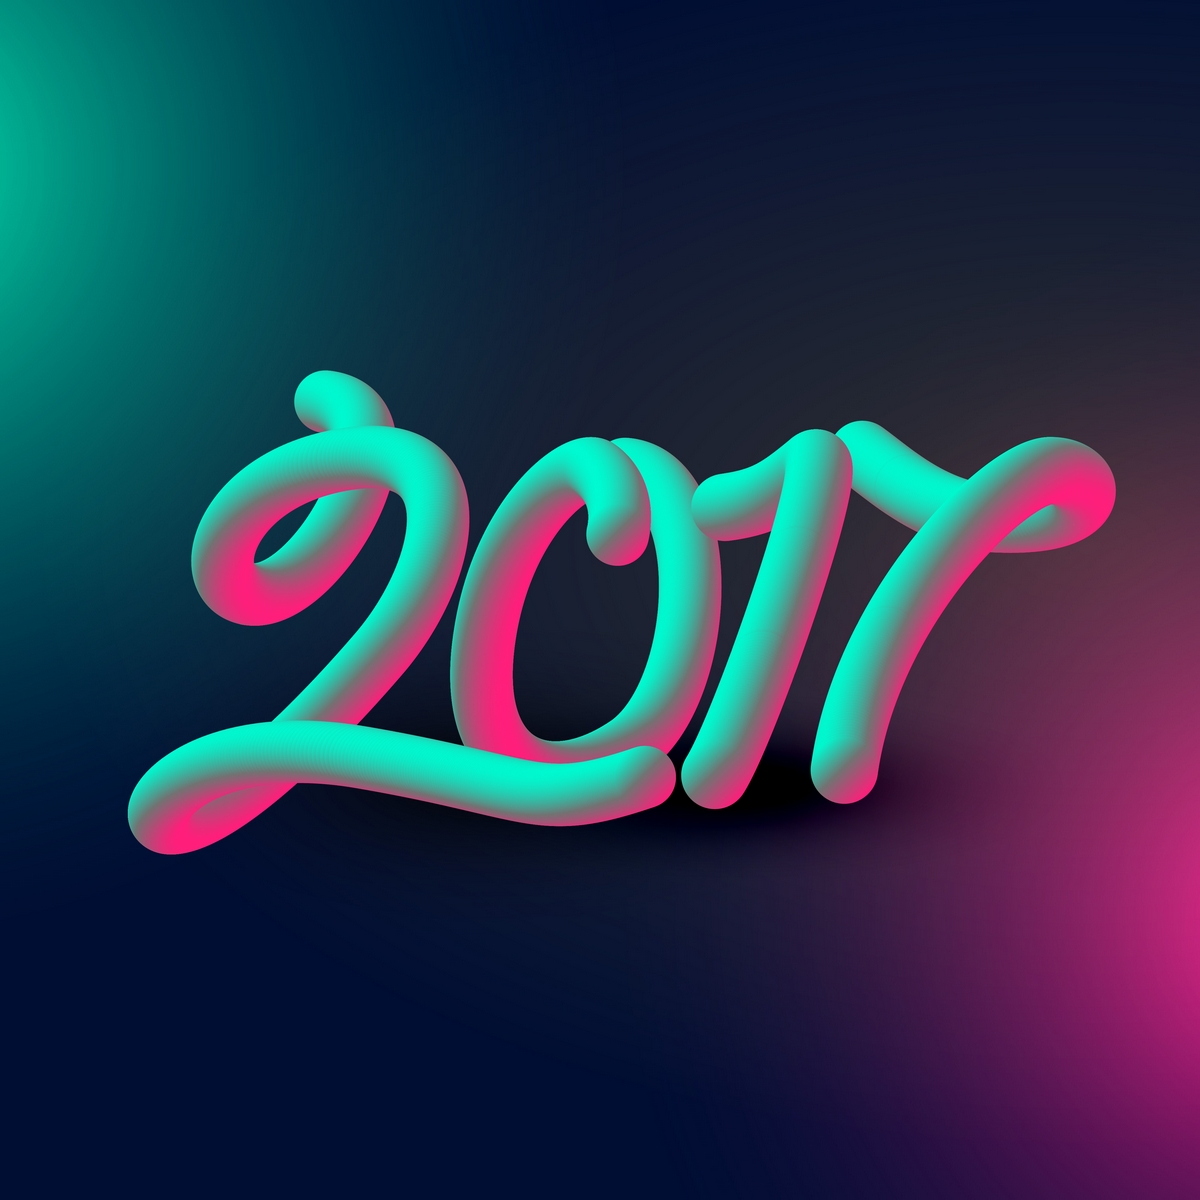 Happy New Year 2019 Images Wishes Messages Quotes Wallpapers